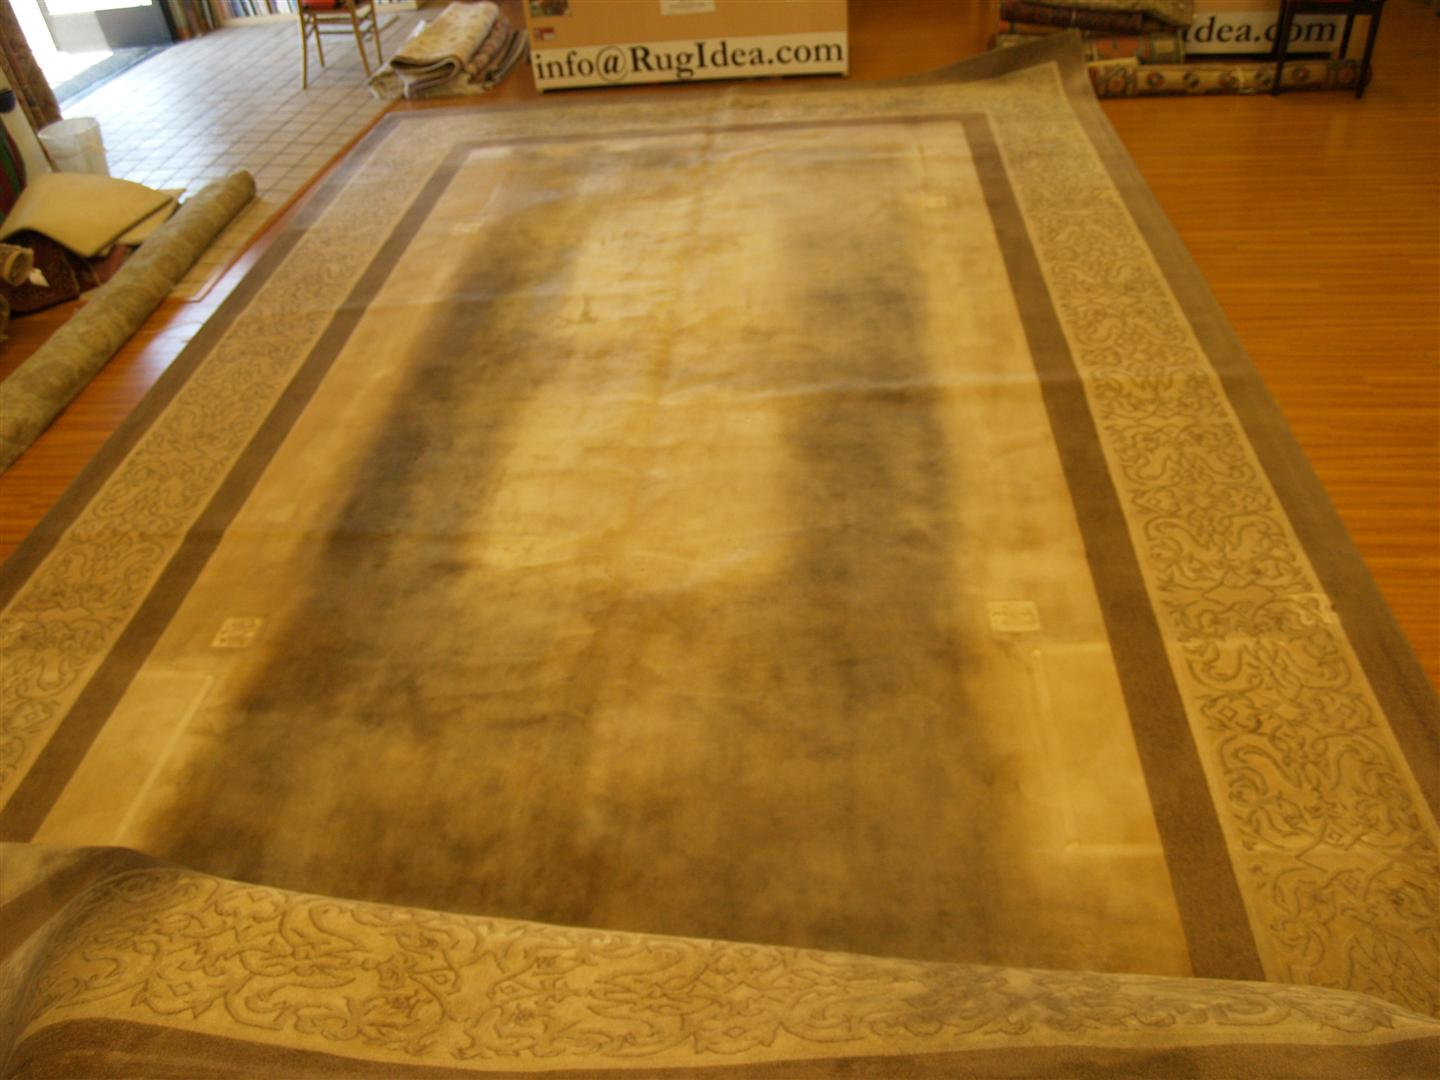 These Rugs Needed The Rug Ideas Treatment And Fast Are Extremely Large Took A Lot Of Man To Handle Clean Them